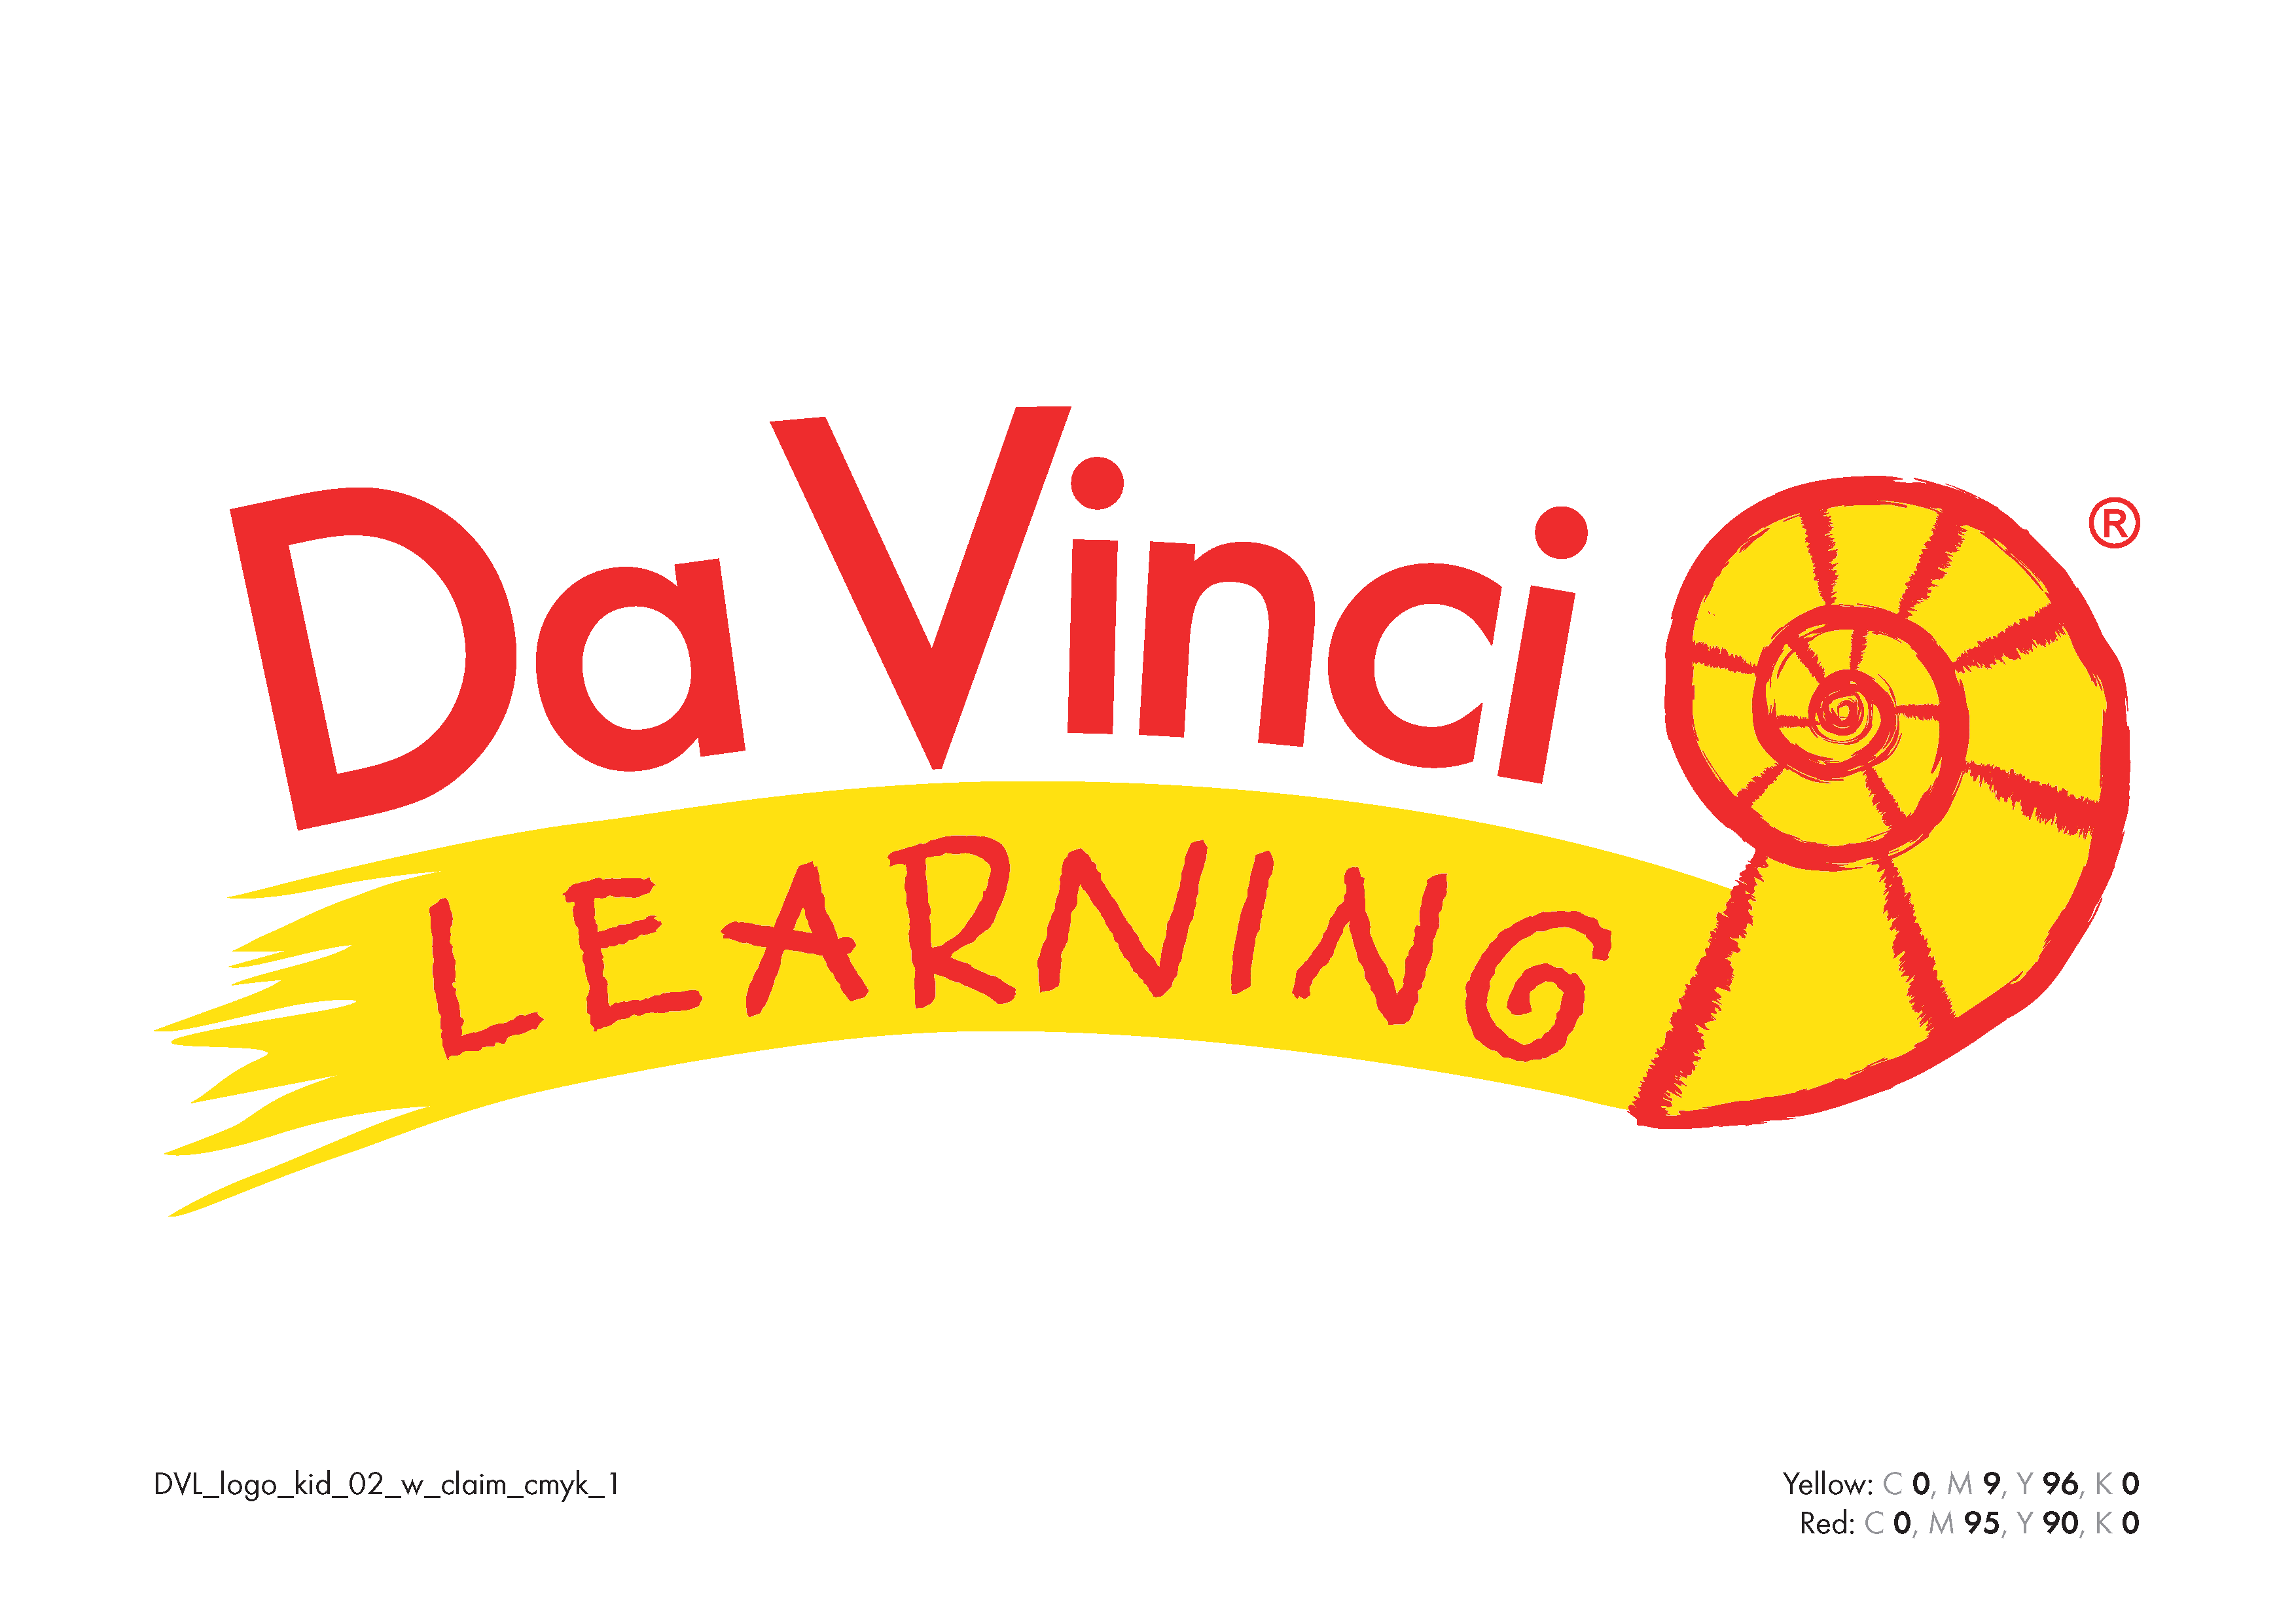 DaVinchi Learning